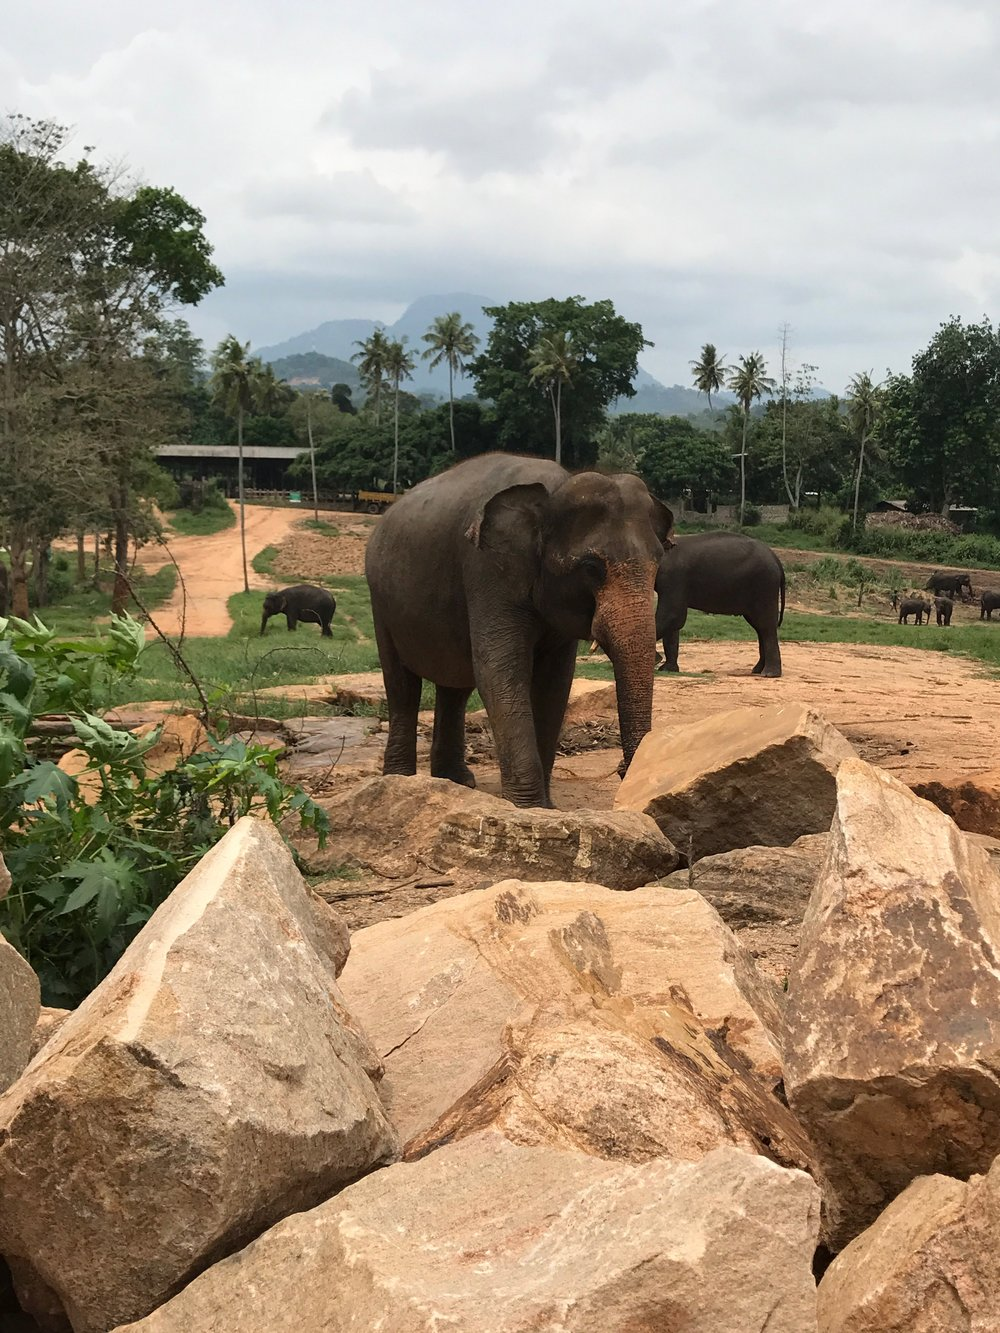 invite-to-paradise-maldives-sri-lanka-specialists-experts-travel-agent-tour-operator-customer-feedback-lucas-emily-fenning-elephant-orphanage-3.jpg